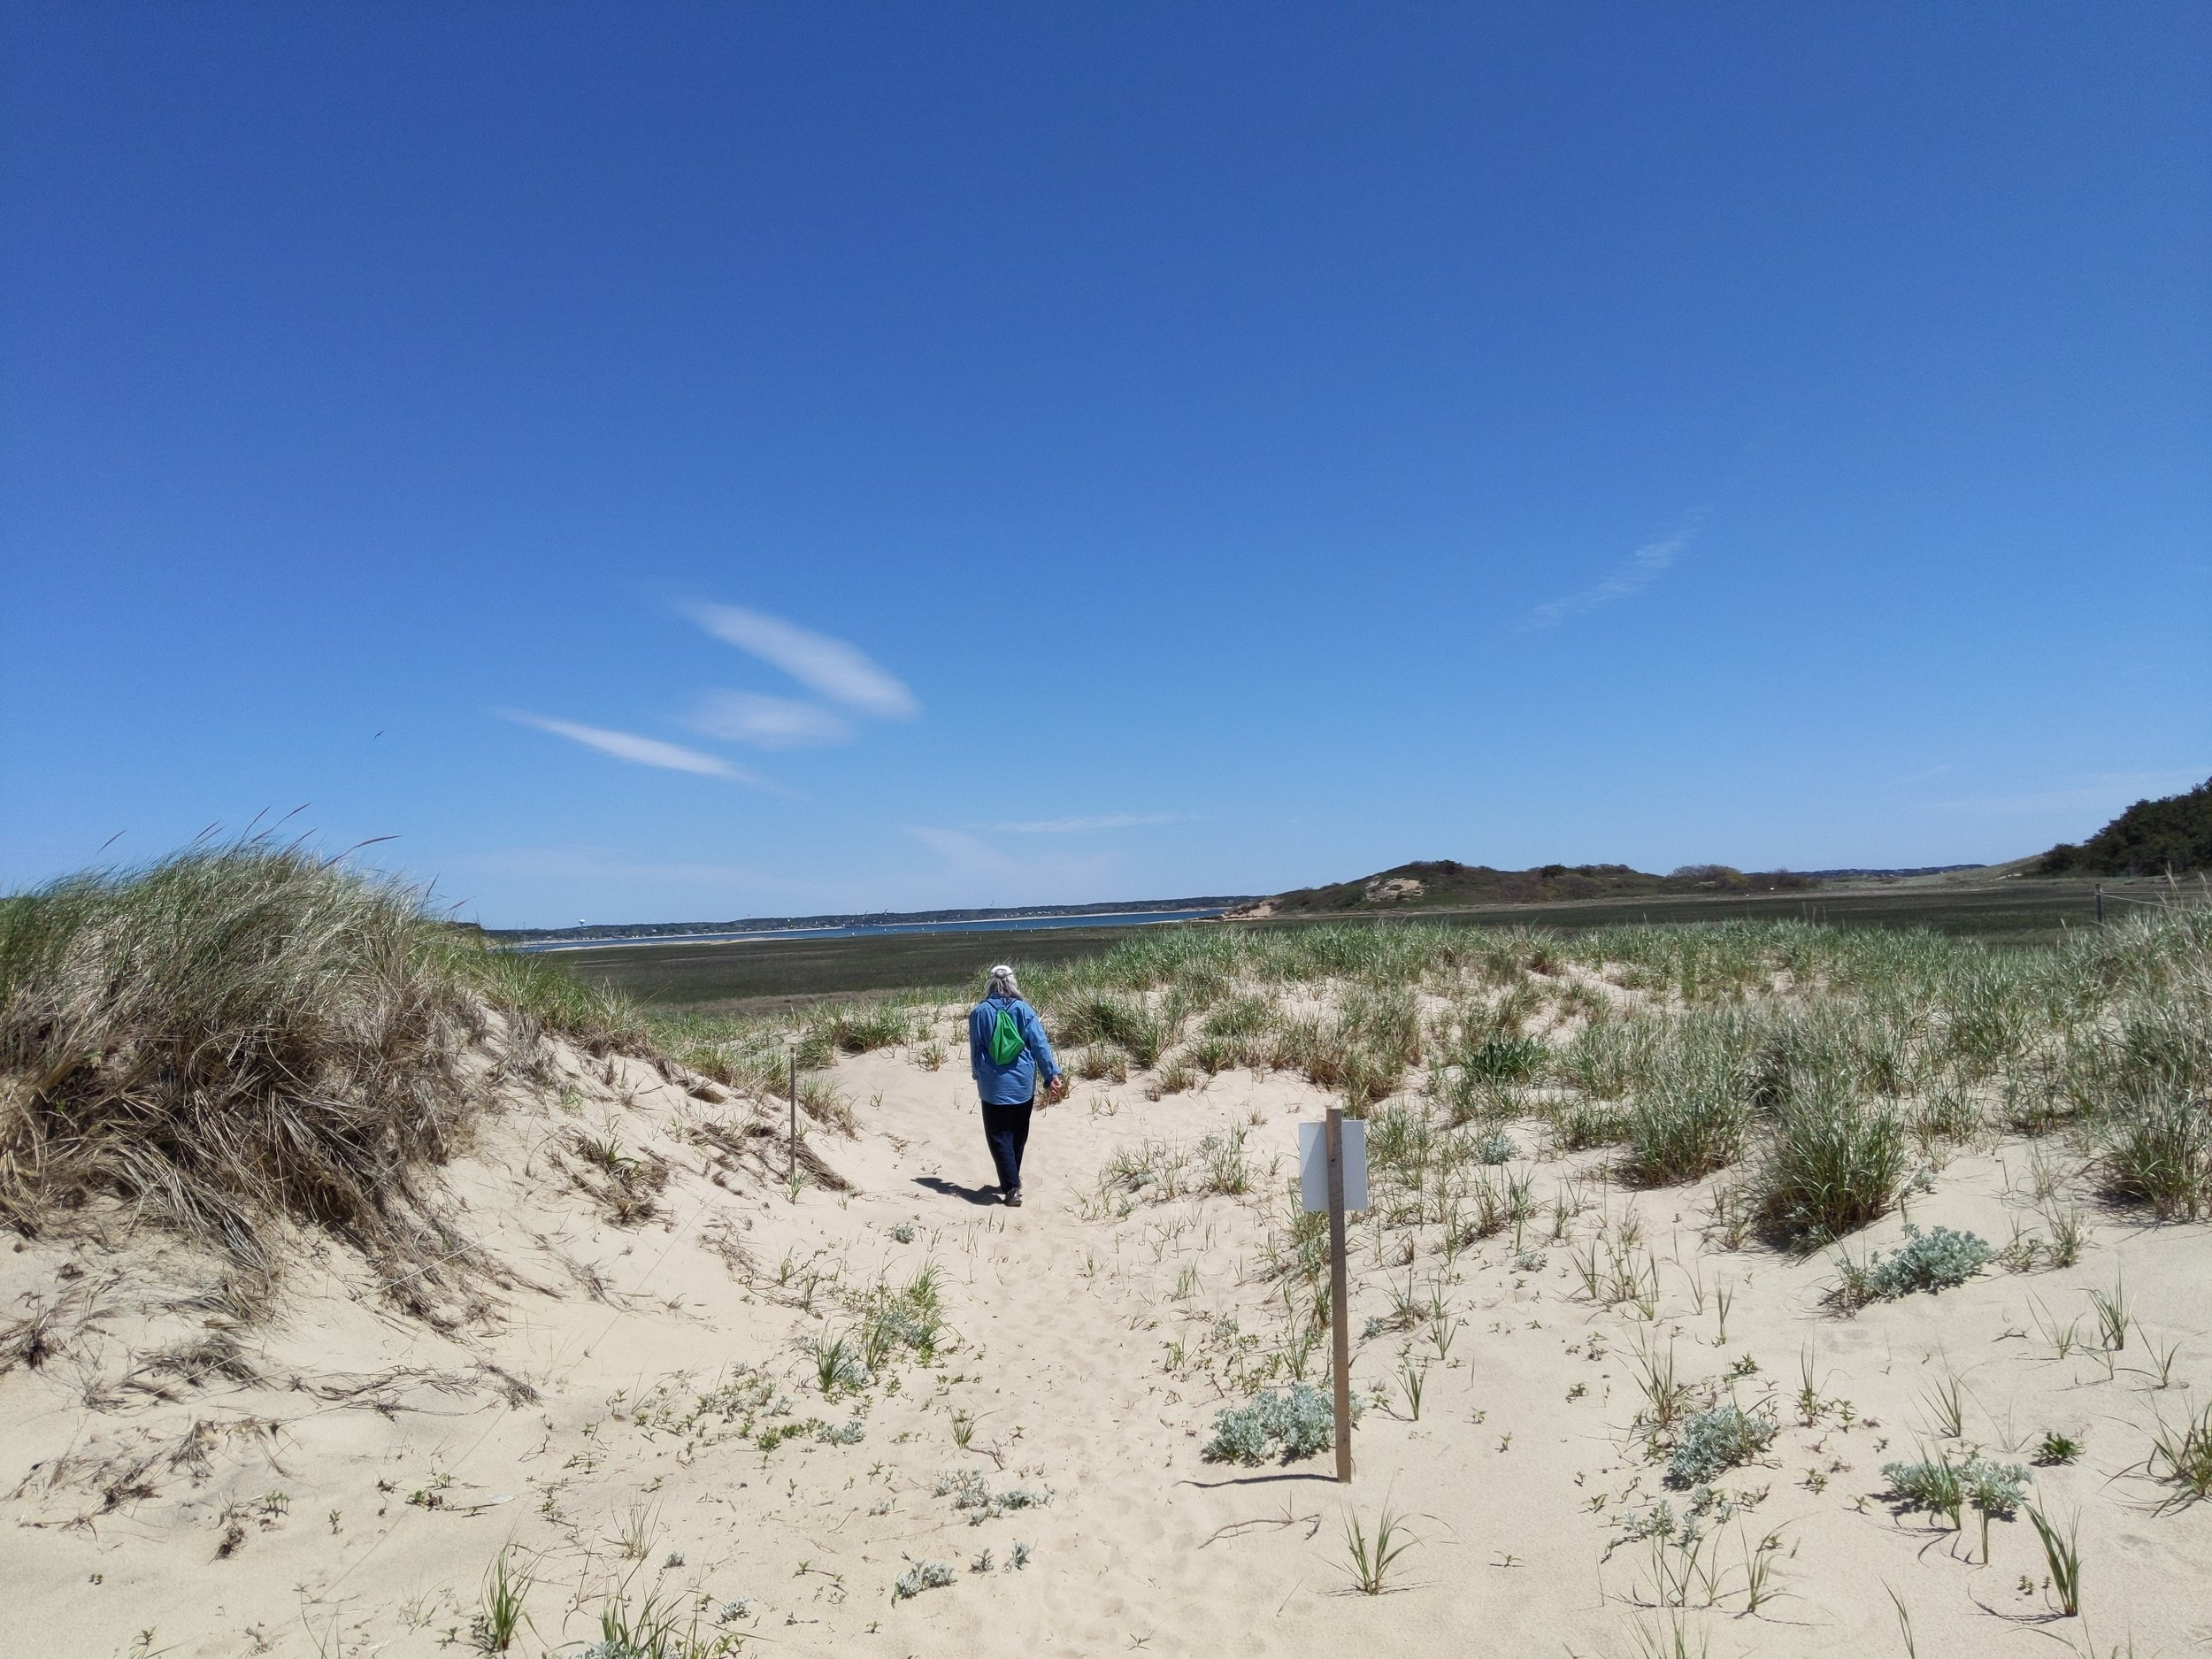 Sue, during our walk on a wonderful trail in Wellfleet, MA, Cape Cod